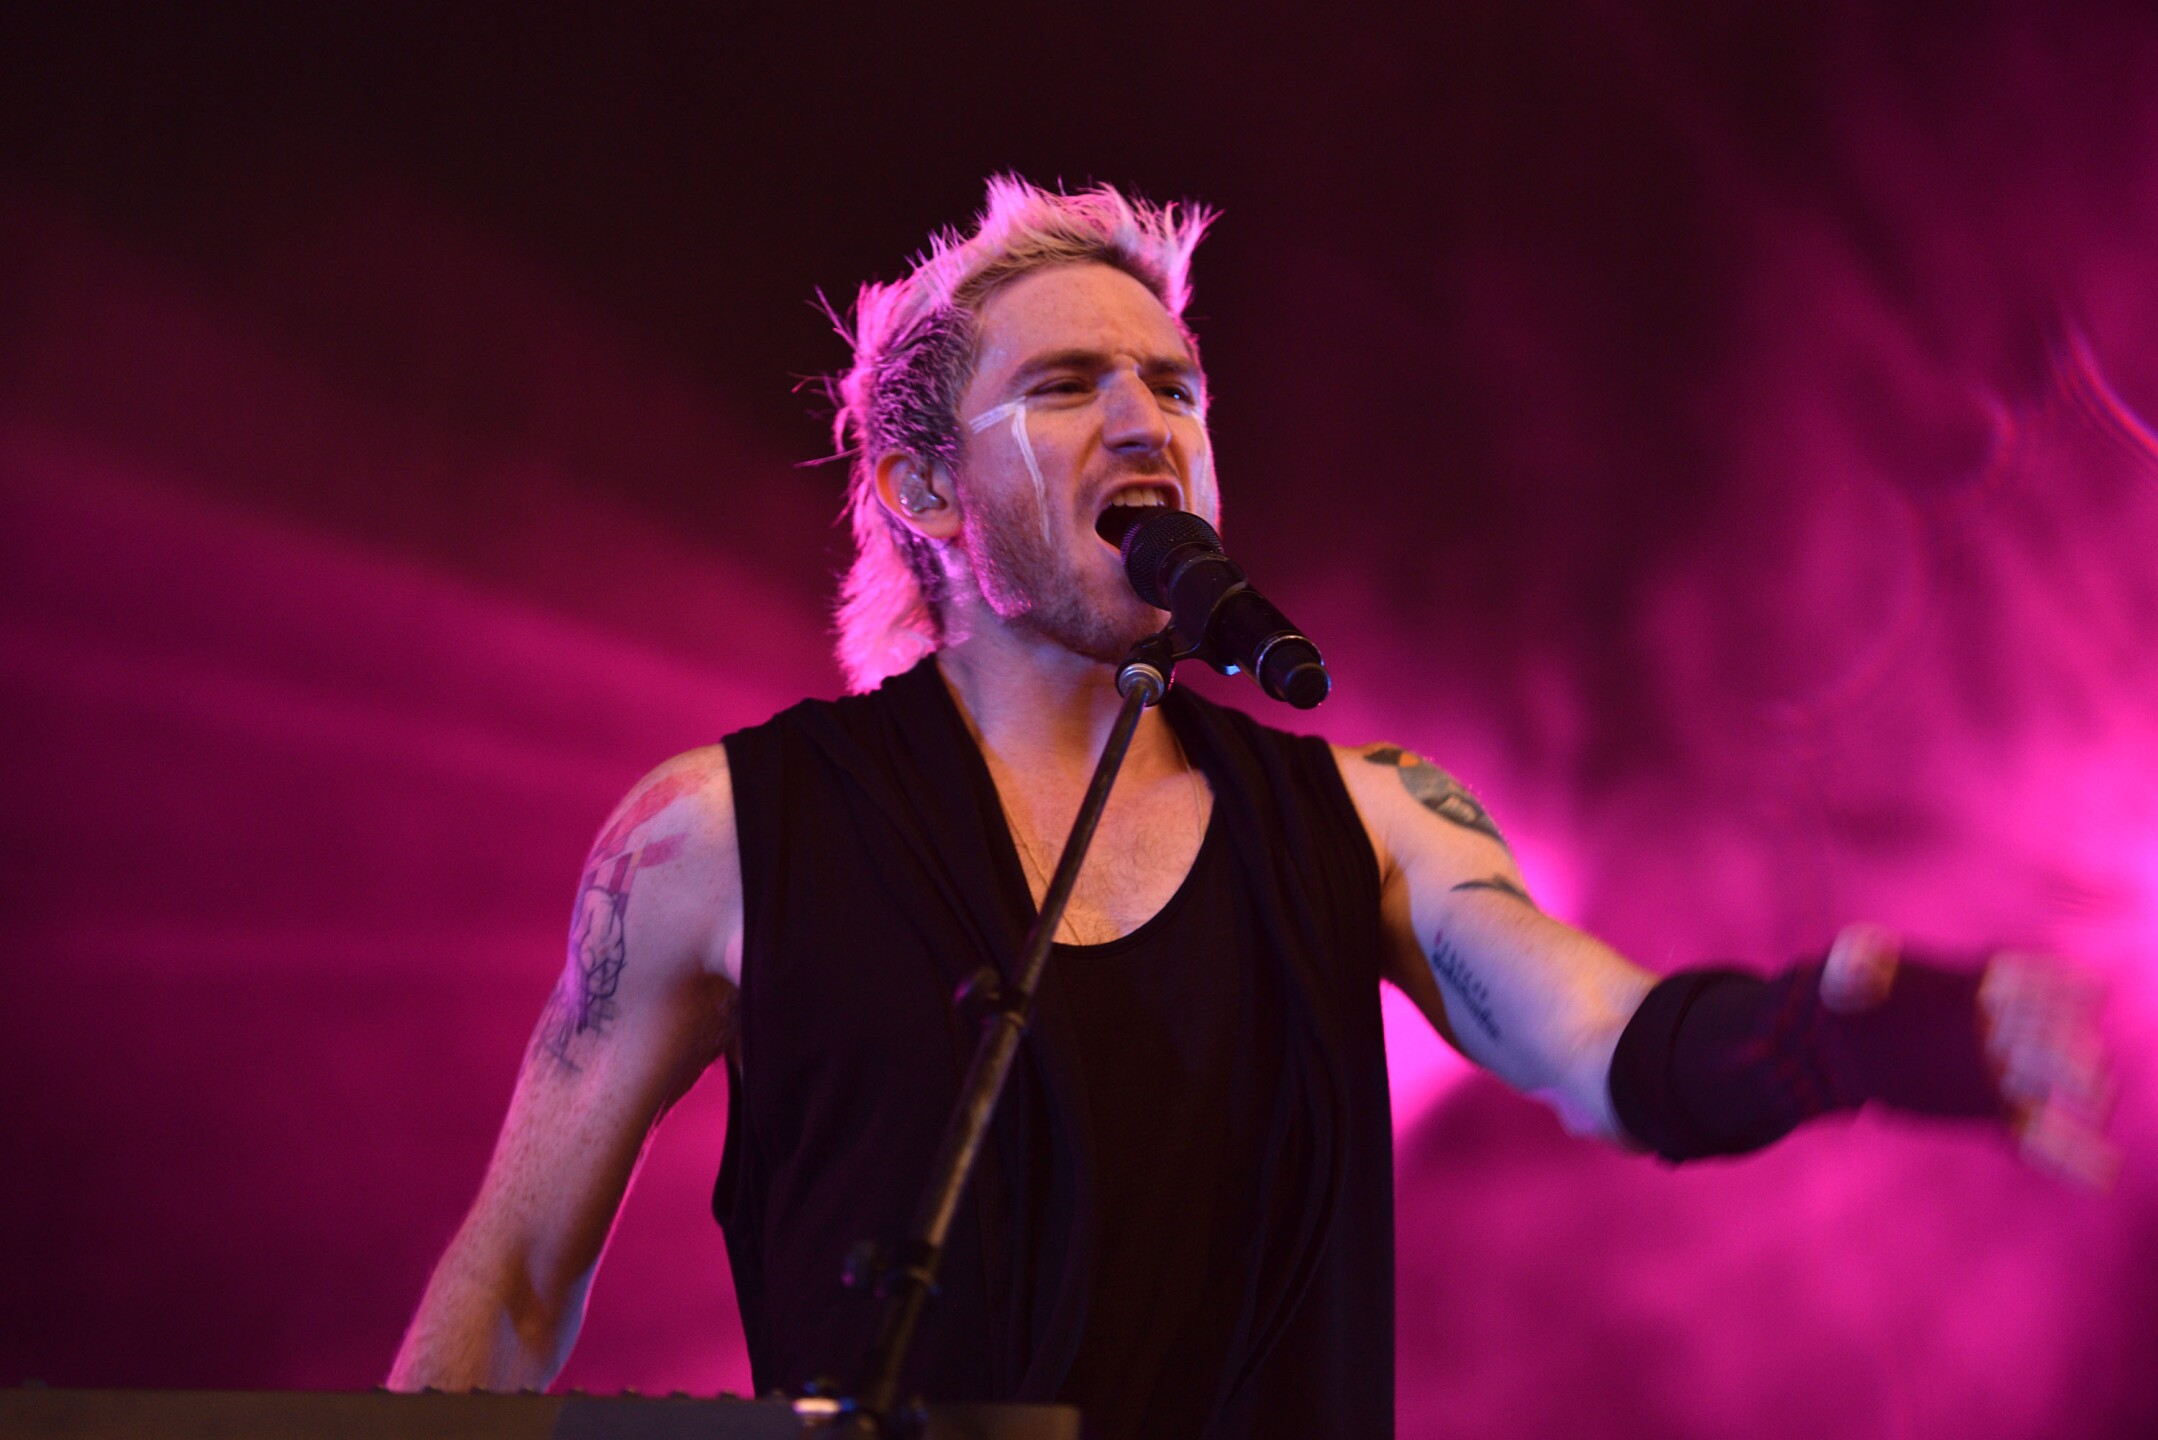 Walk The Moon will perform June 26 at Summerfest